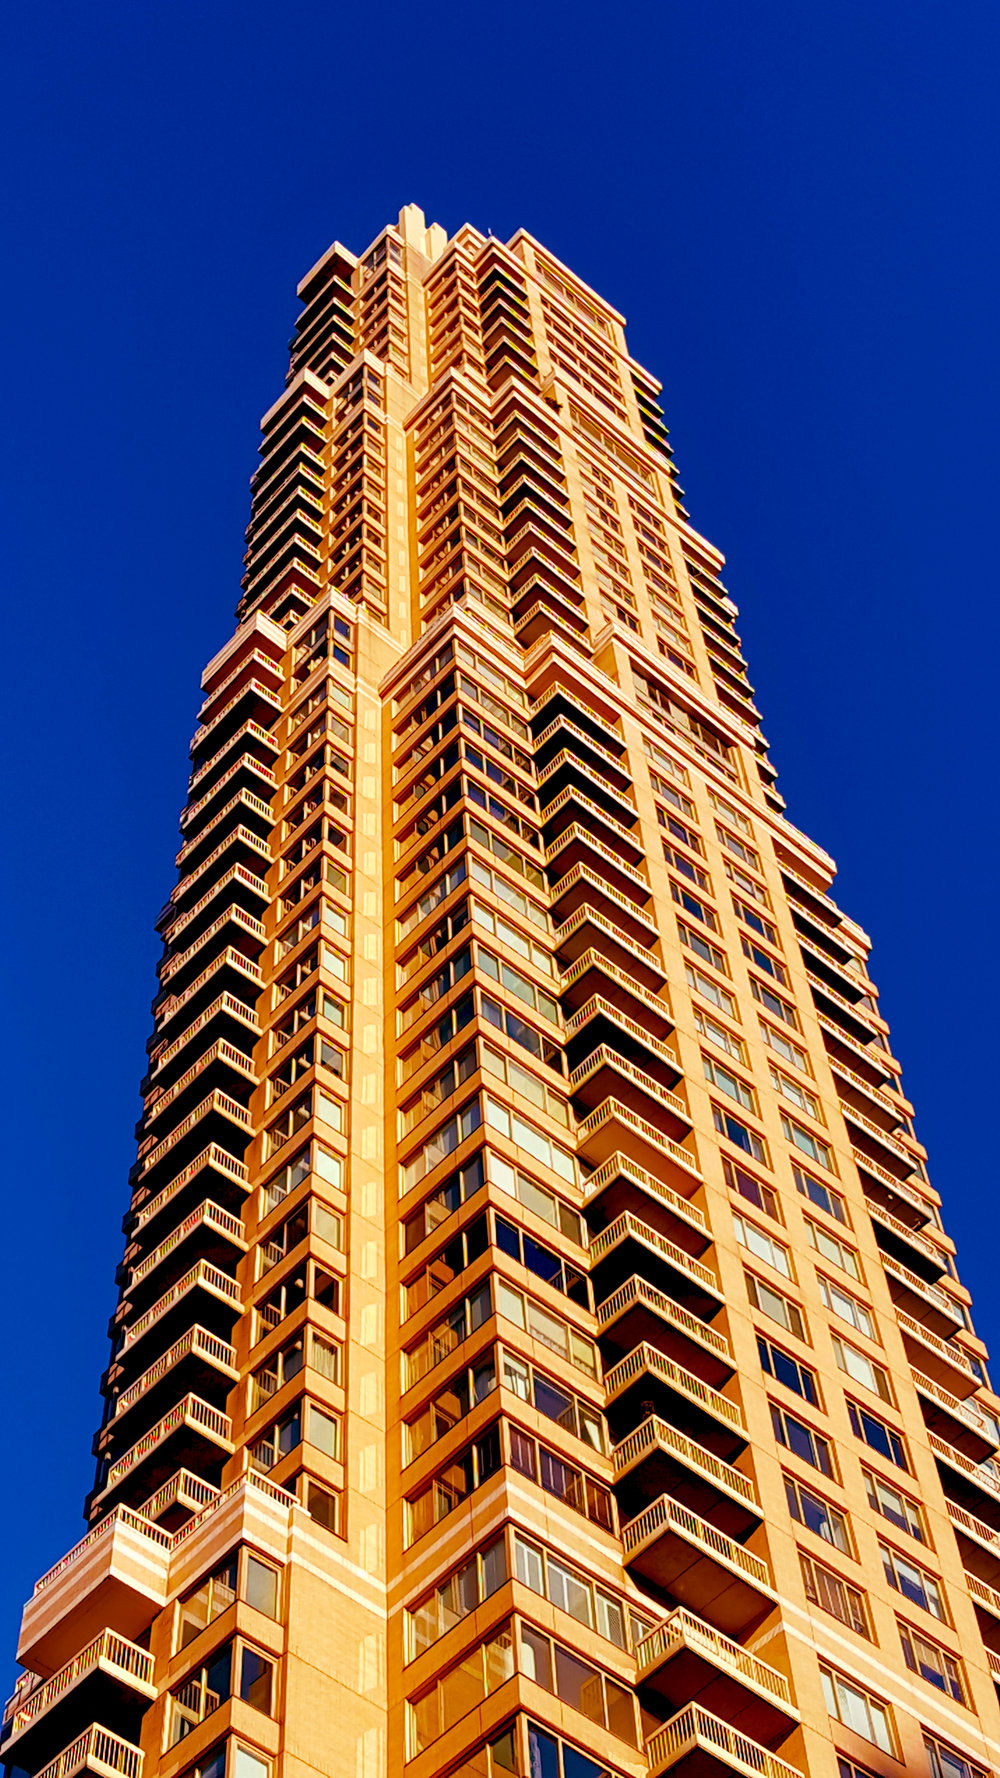 Skyscrapers 3.jpg